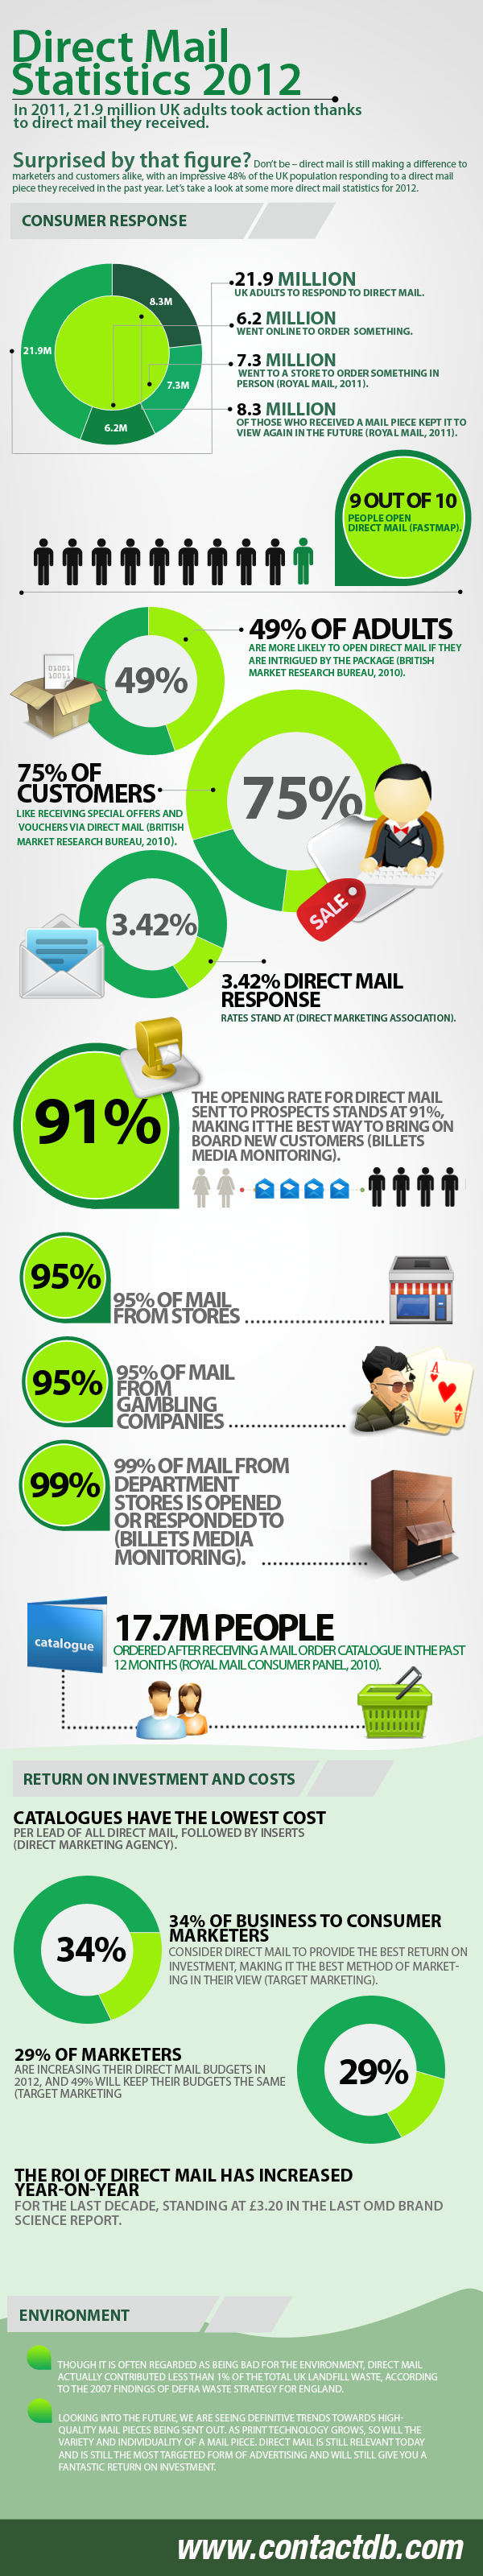 Lead Generation Infographic Means of Lead Generation